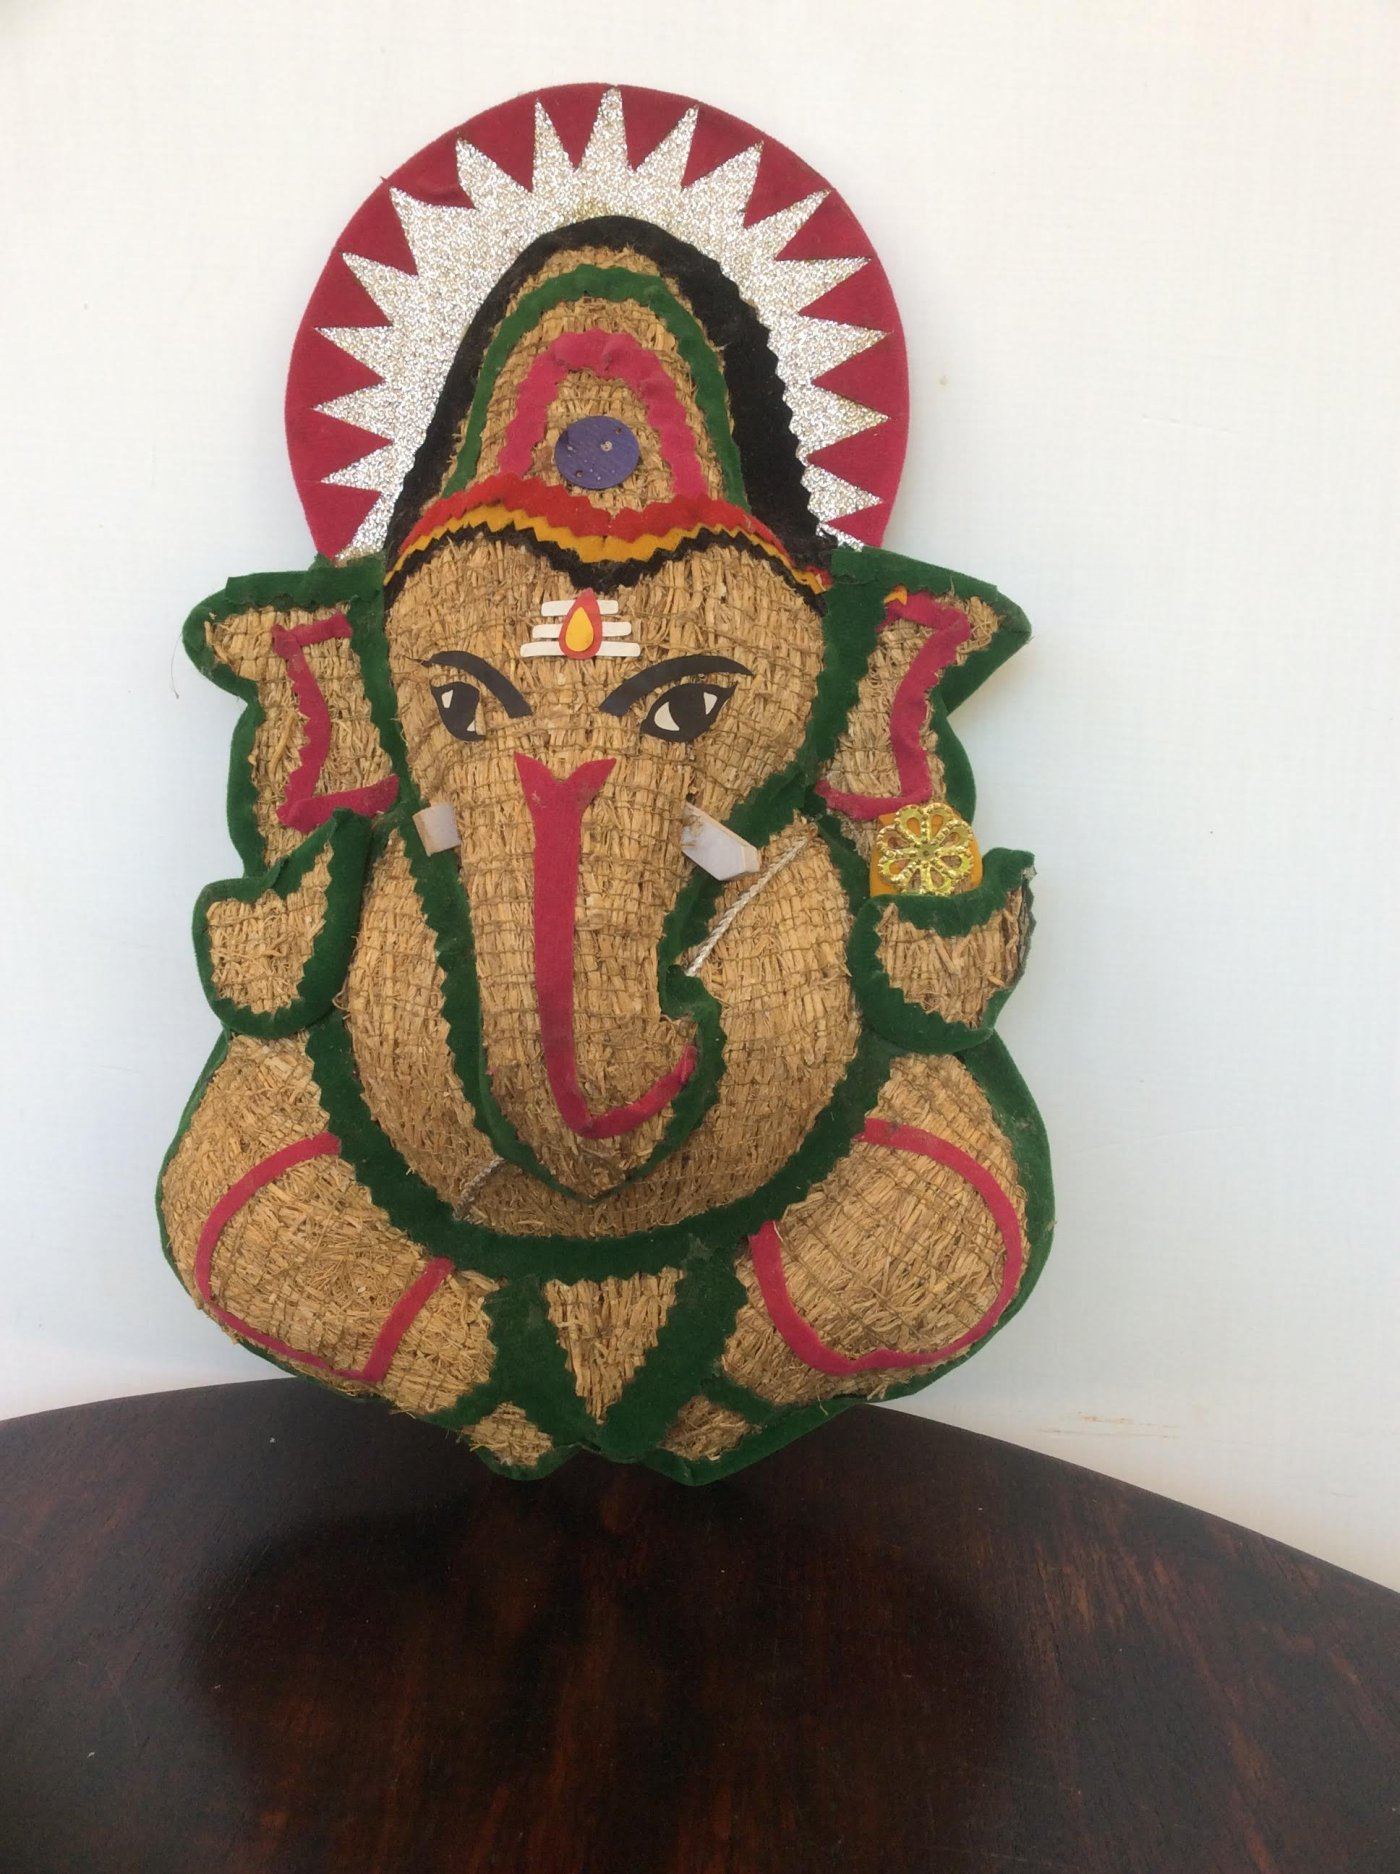 Buy things made of coconut fiber from Kerala